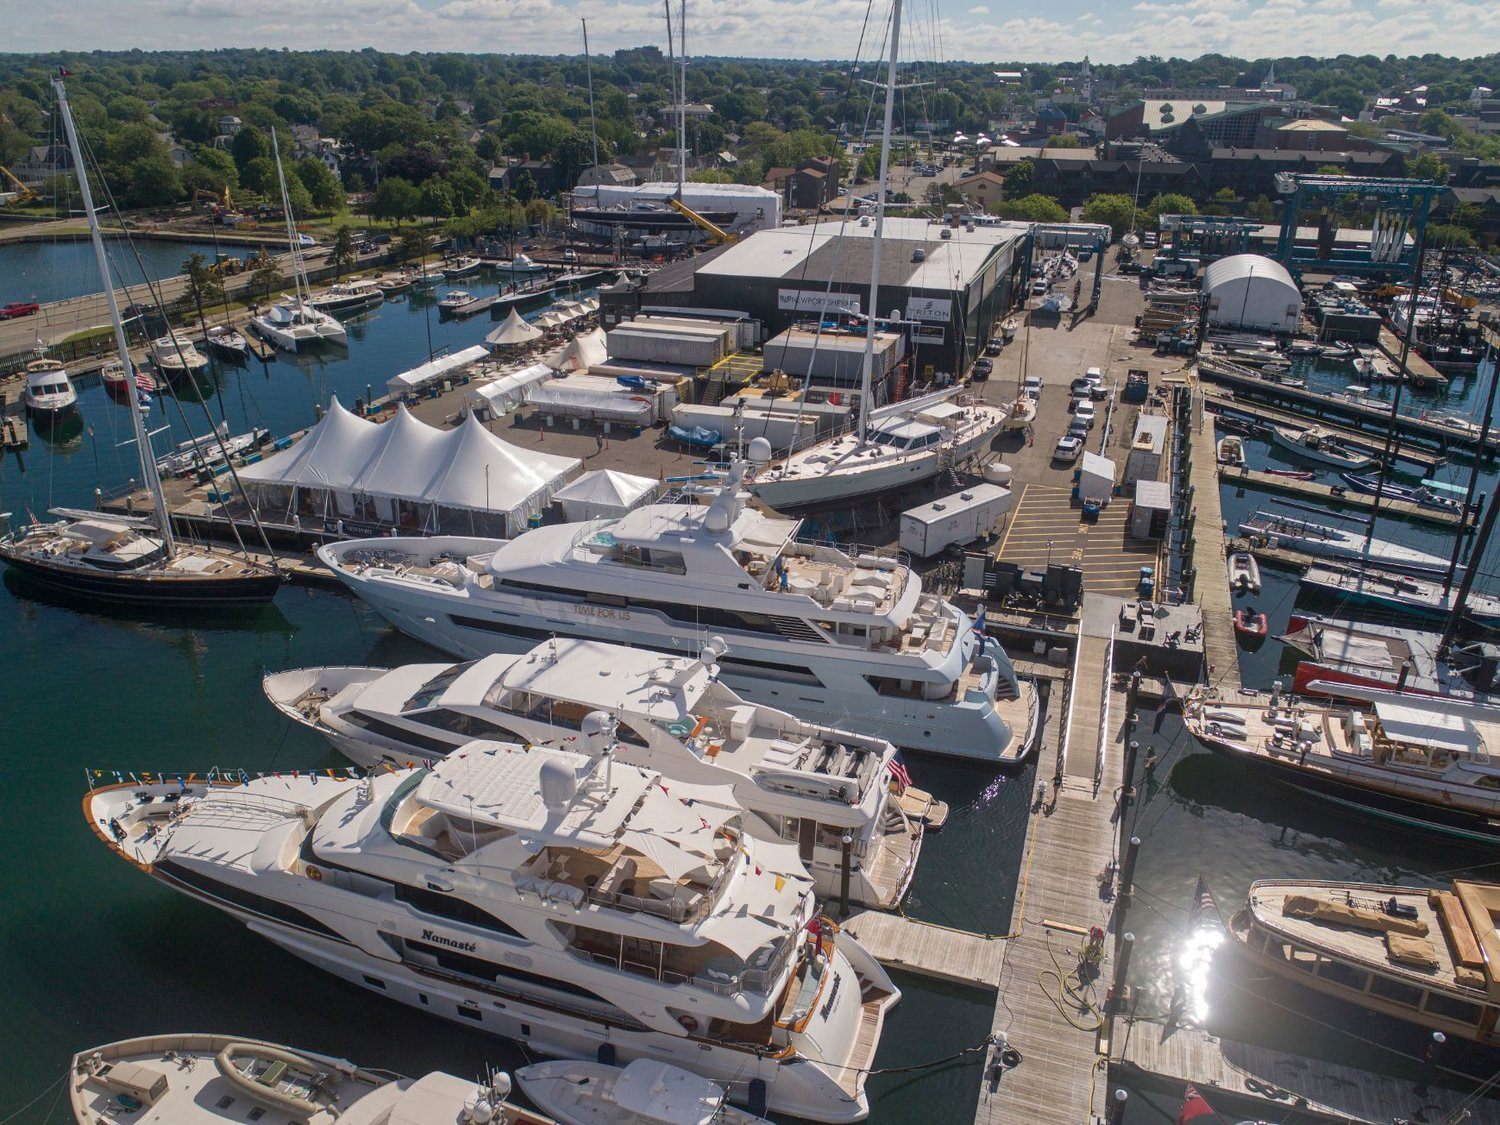 Newport Shipyard from above during show